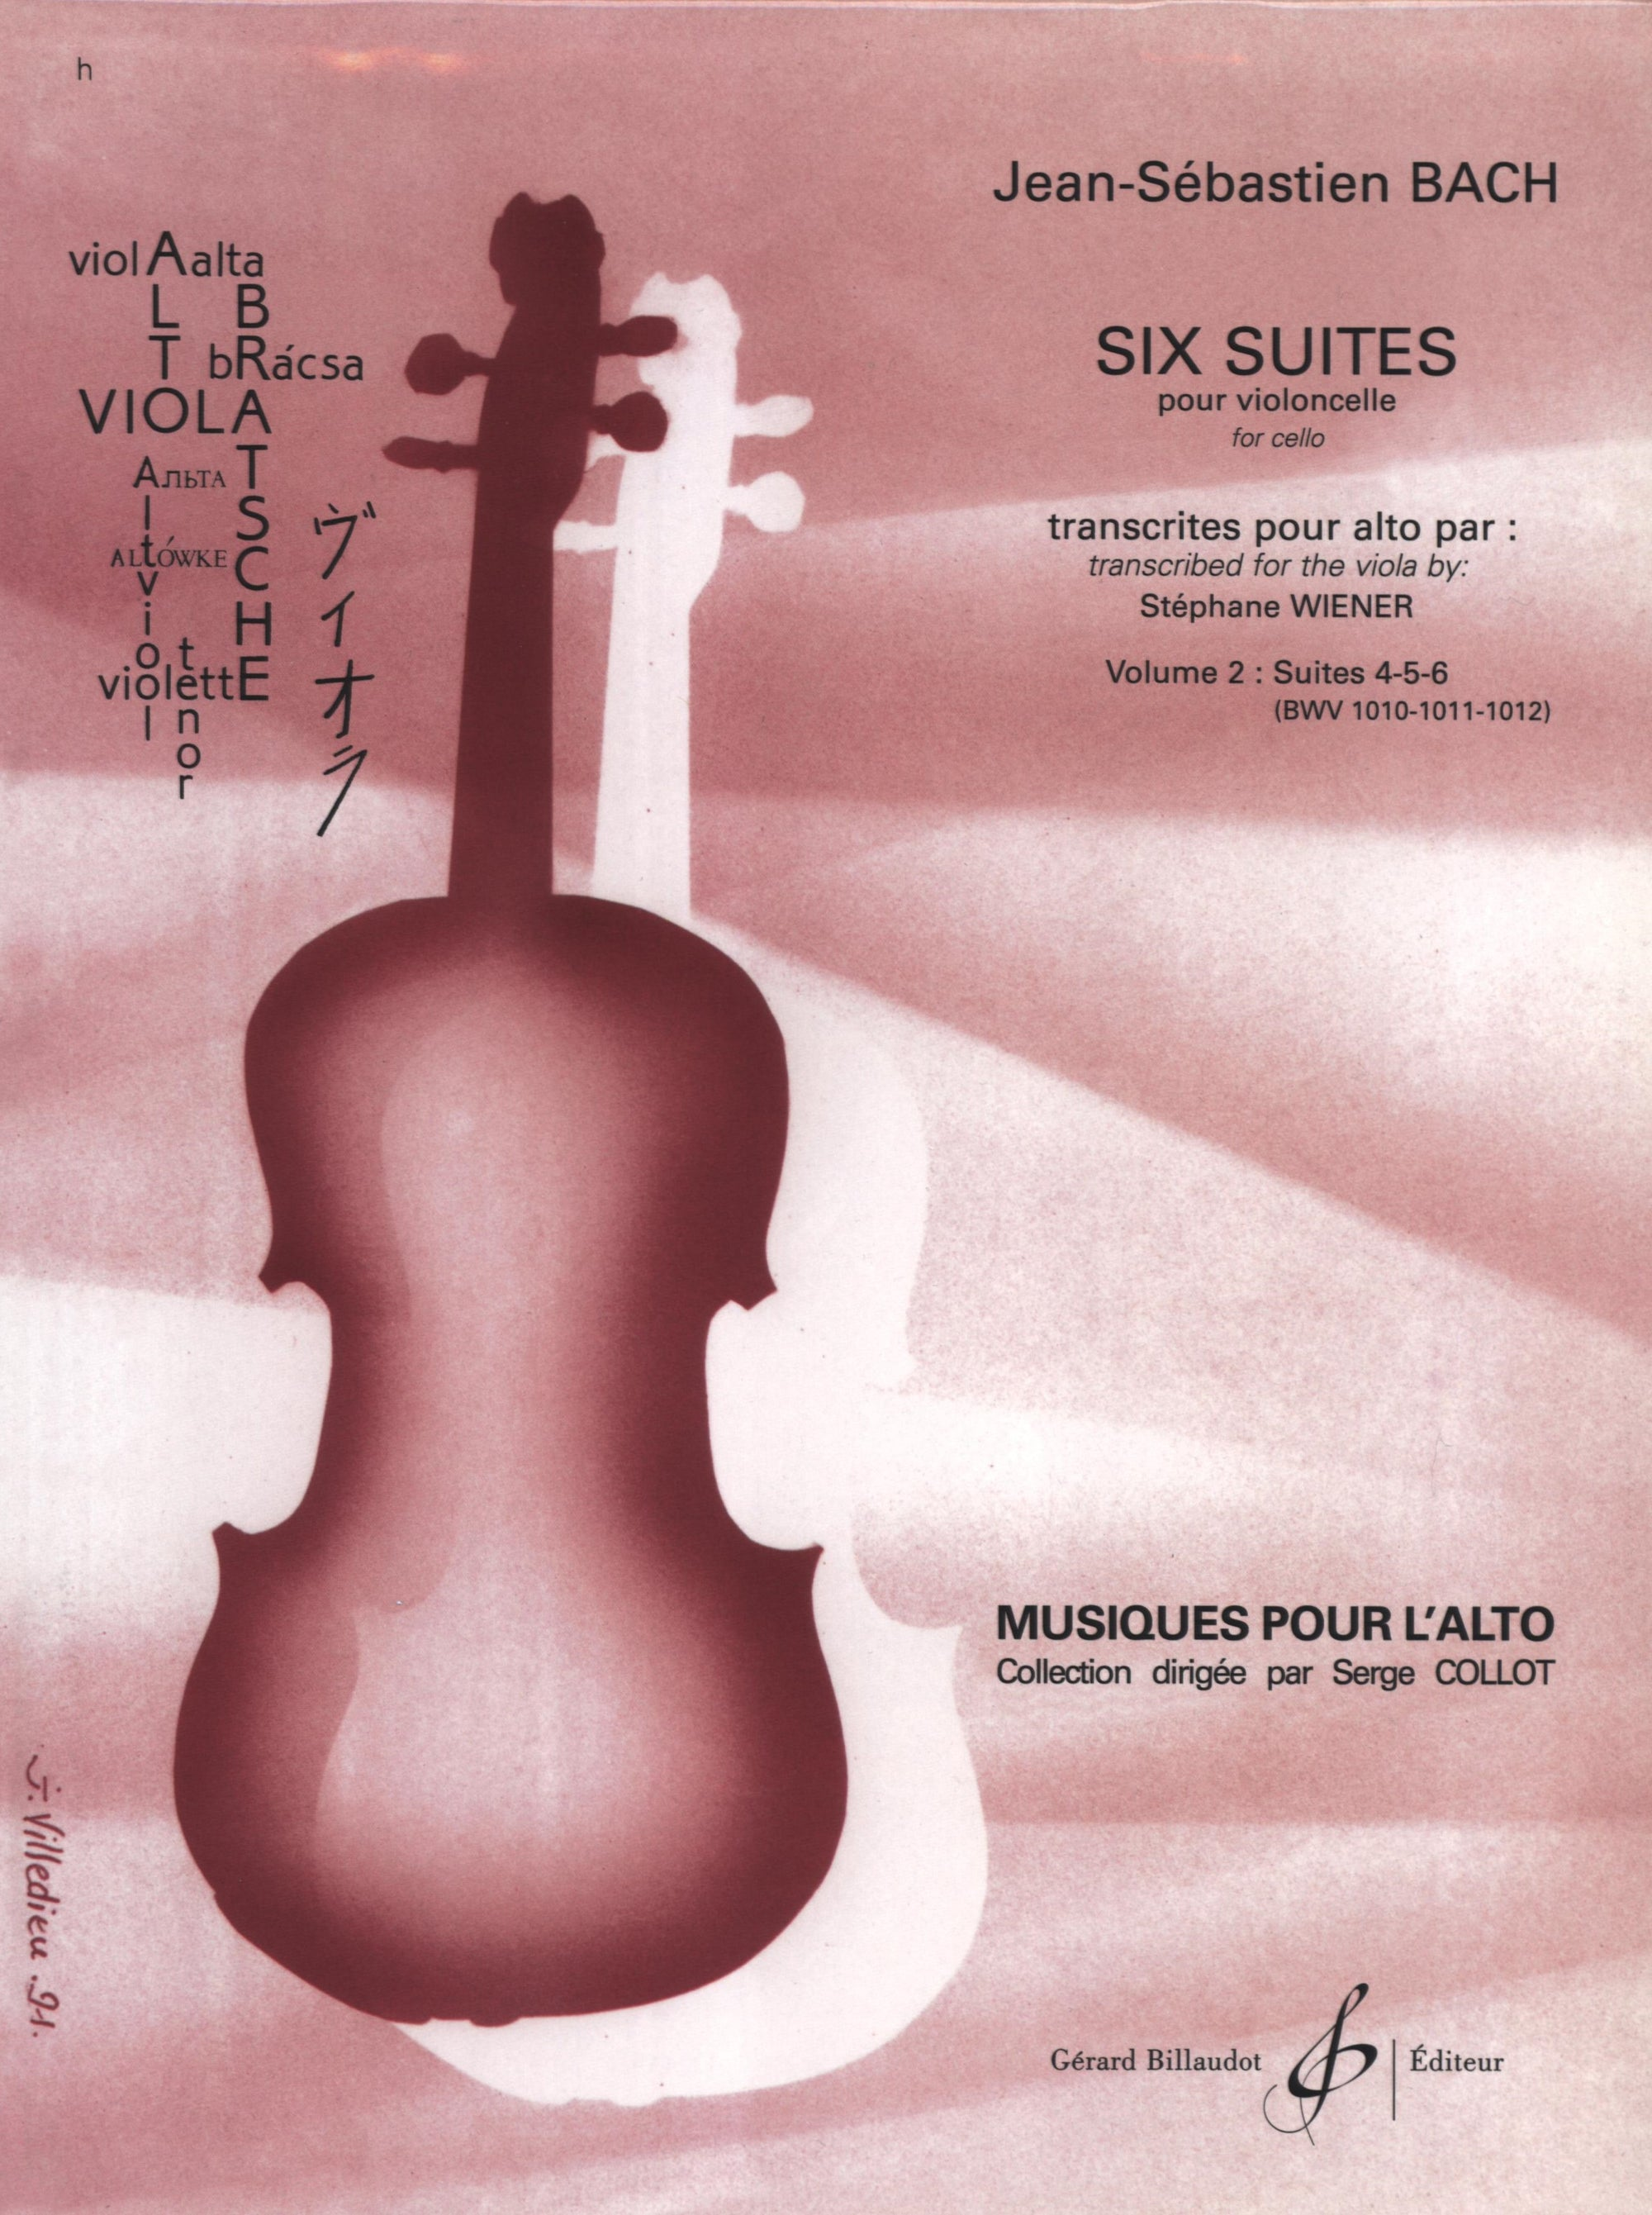 Bach: 6 Cello Suites Transcribed for Viola - Volume 2 (Nos. 4-6)